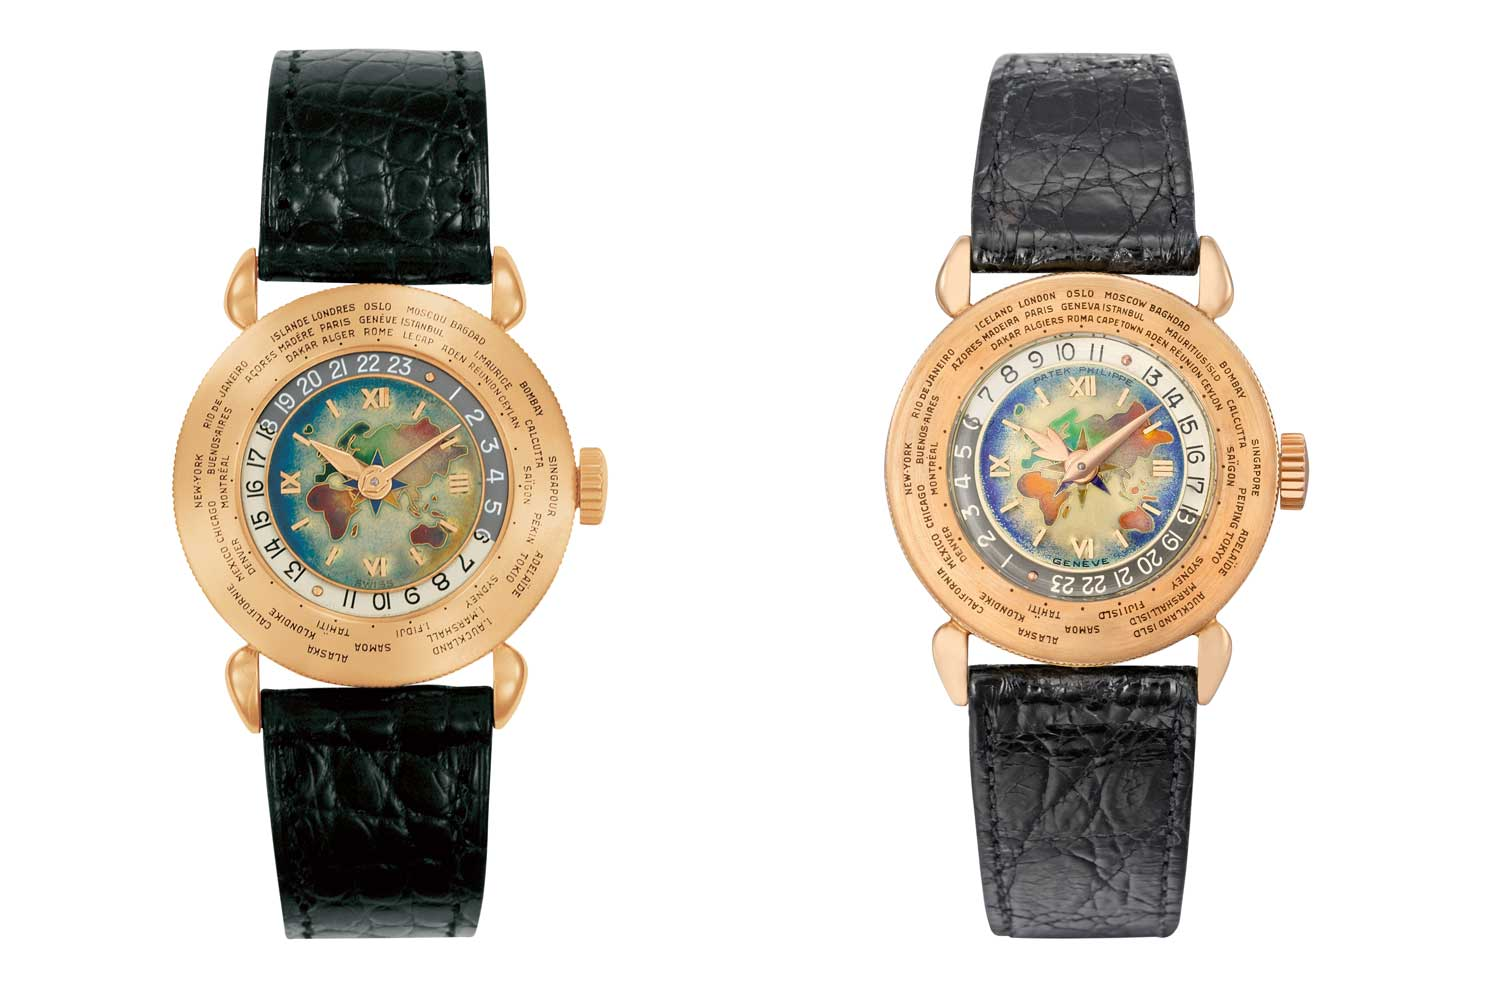 Louis Cottier designed some truly ornate and beautiful hands for 1415. Some of the most distinct are Cottier's circular or fleur-de-lys hour hand usually combined with a sword shaped minute hand. (Images : Patek Philippe)